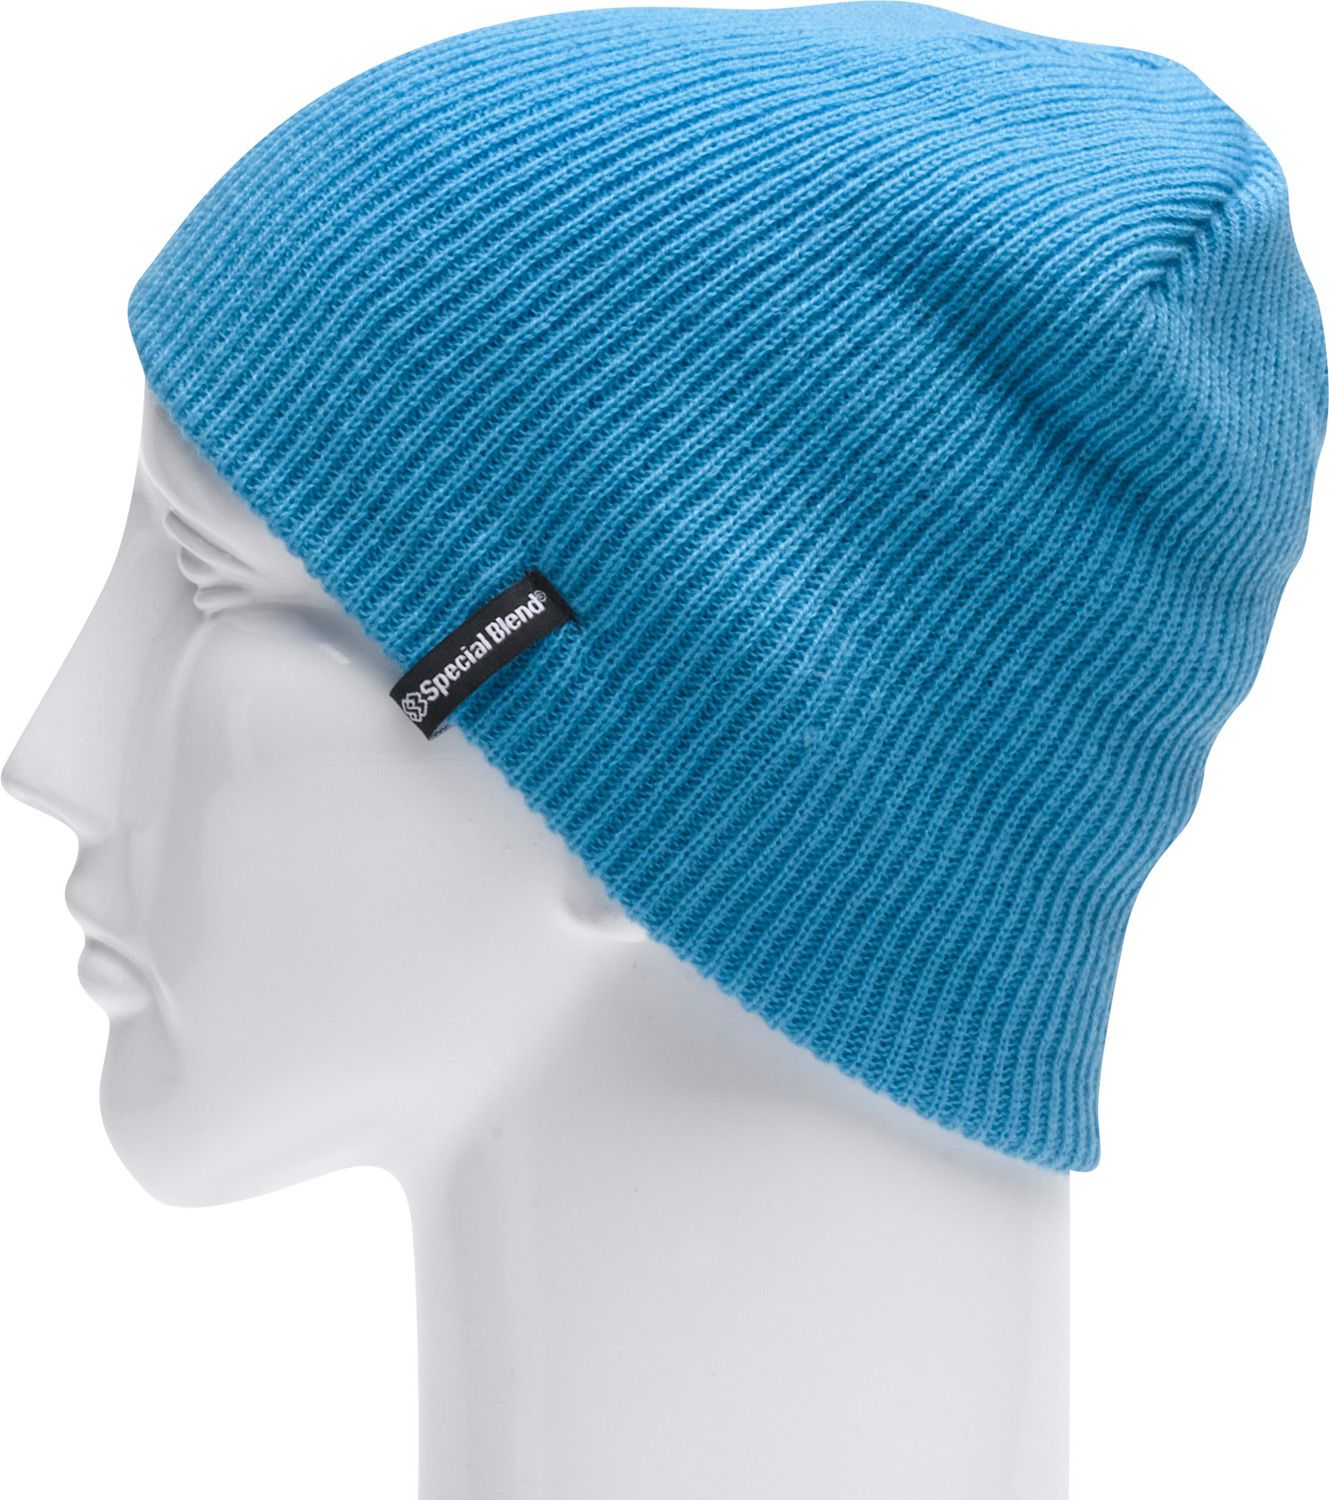 "Key Features of the Special Blend Traverse Beanie: Machine knit 100% acrylic 9 1/2"" tall 1x1 fine rib One size fits all - $19.95"